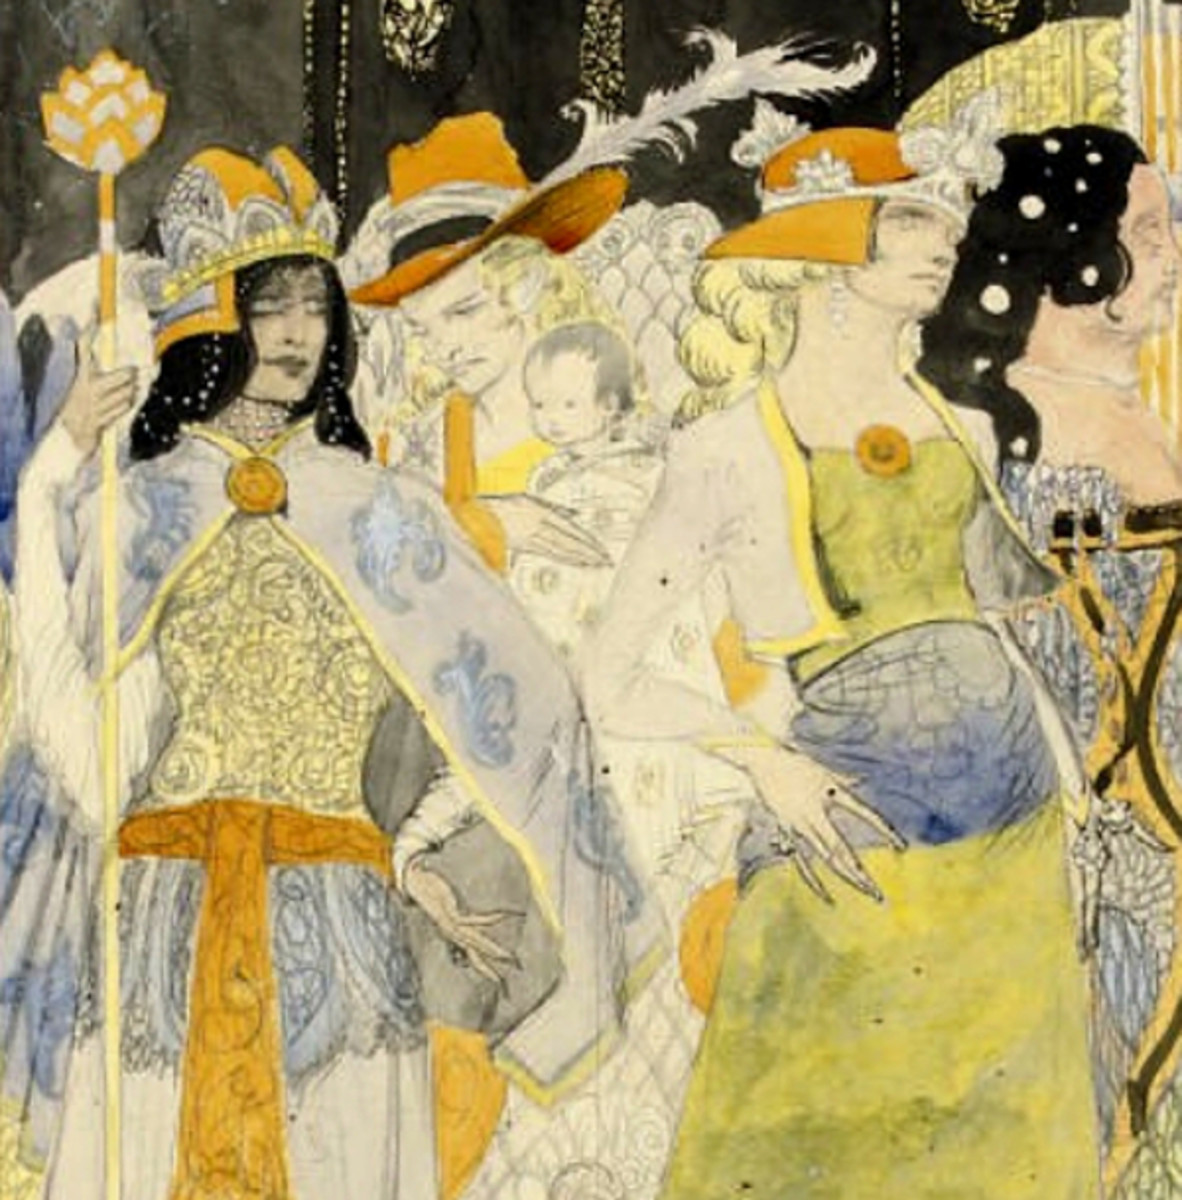 Here we show a portion of the preparatory illustration (known as a 'cartoon') by Harry Clarke associated with the Stained Glass panel shown above.